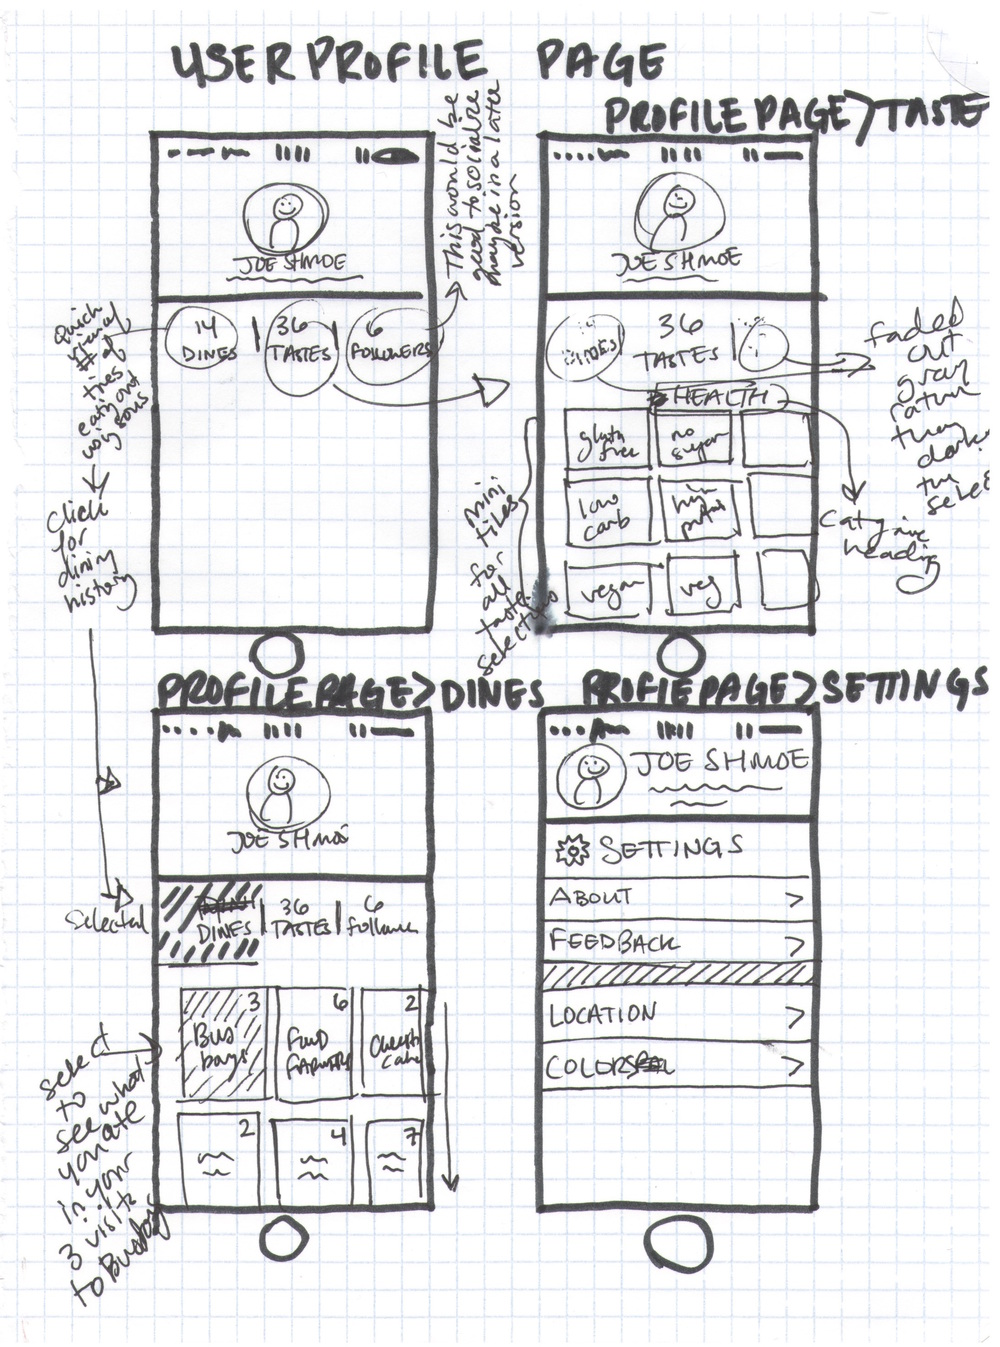 sous sketch 7 user profile page.jpg